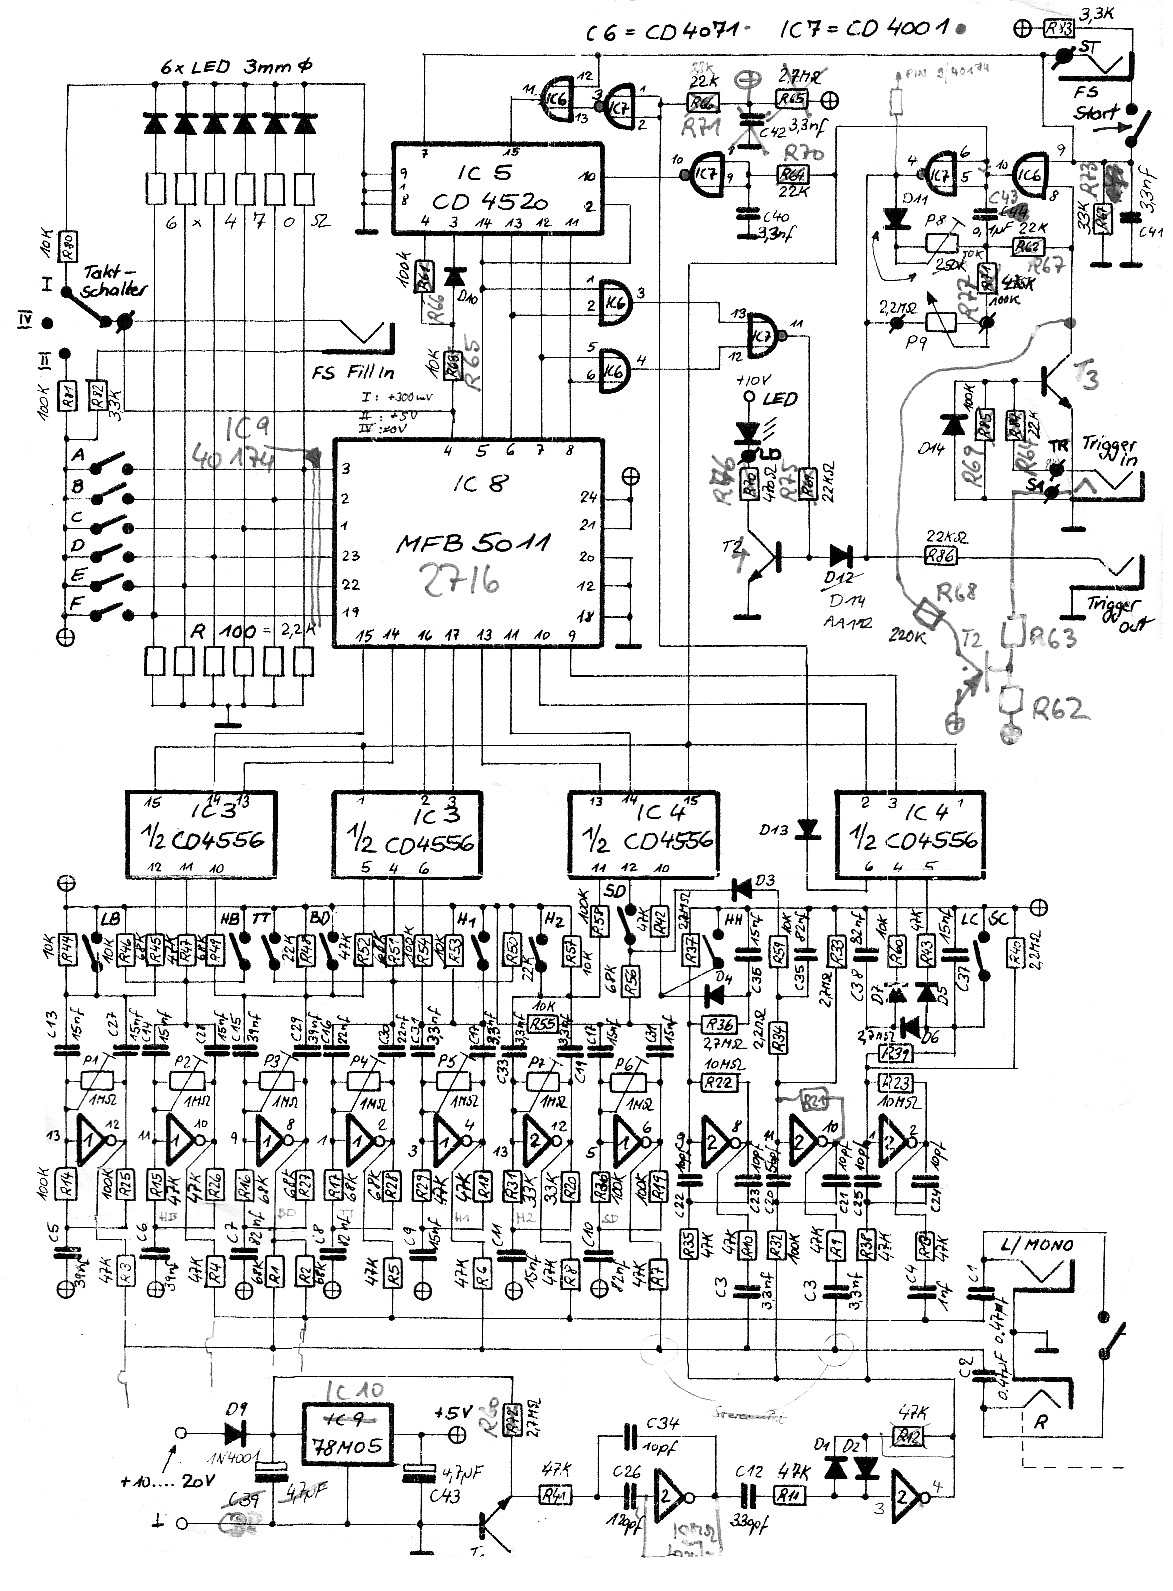 Synthesizer Service Manuals